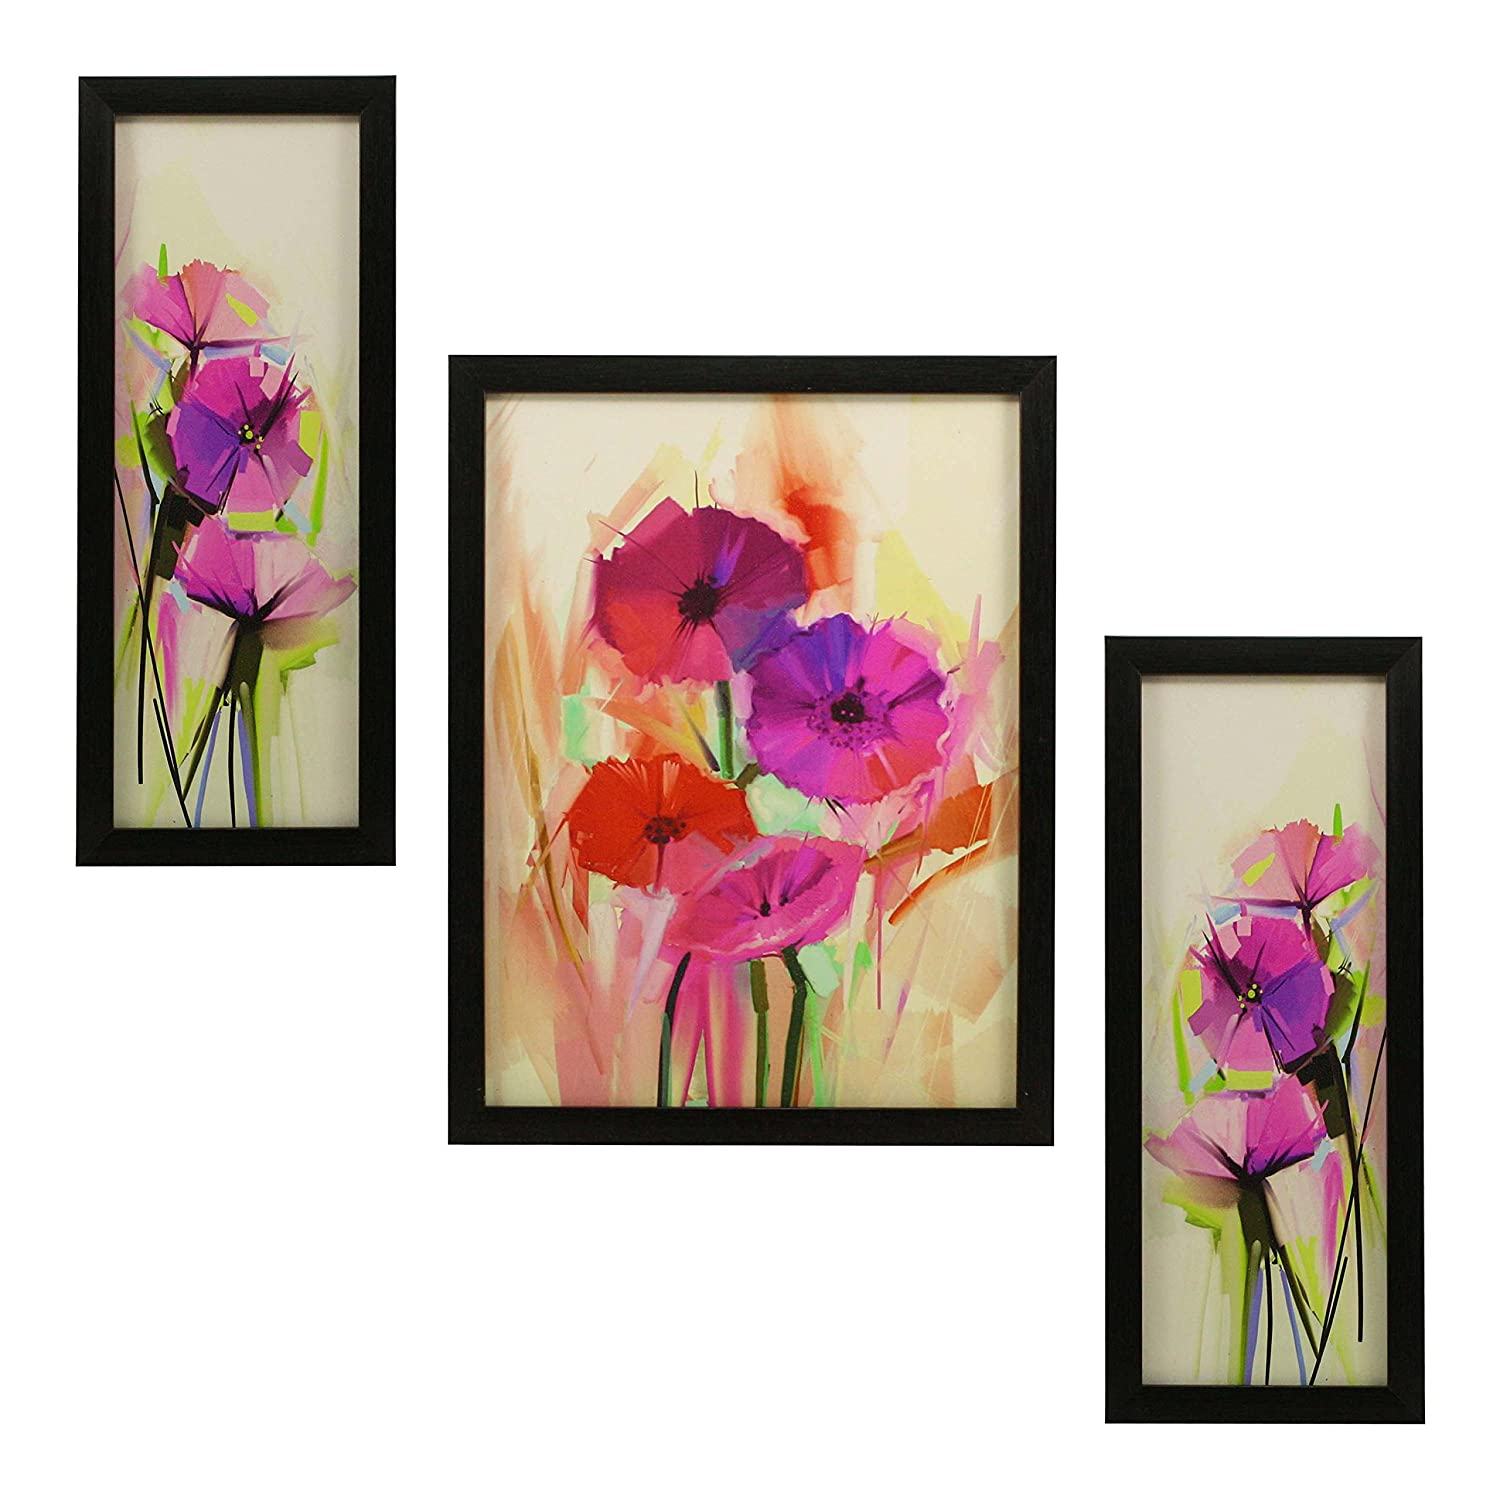 3 PC SET OF FLORAL PAINTINGS 1063 WITHOUT GLASS 5.2 X 12.5